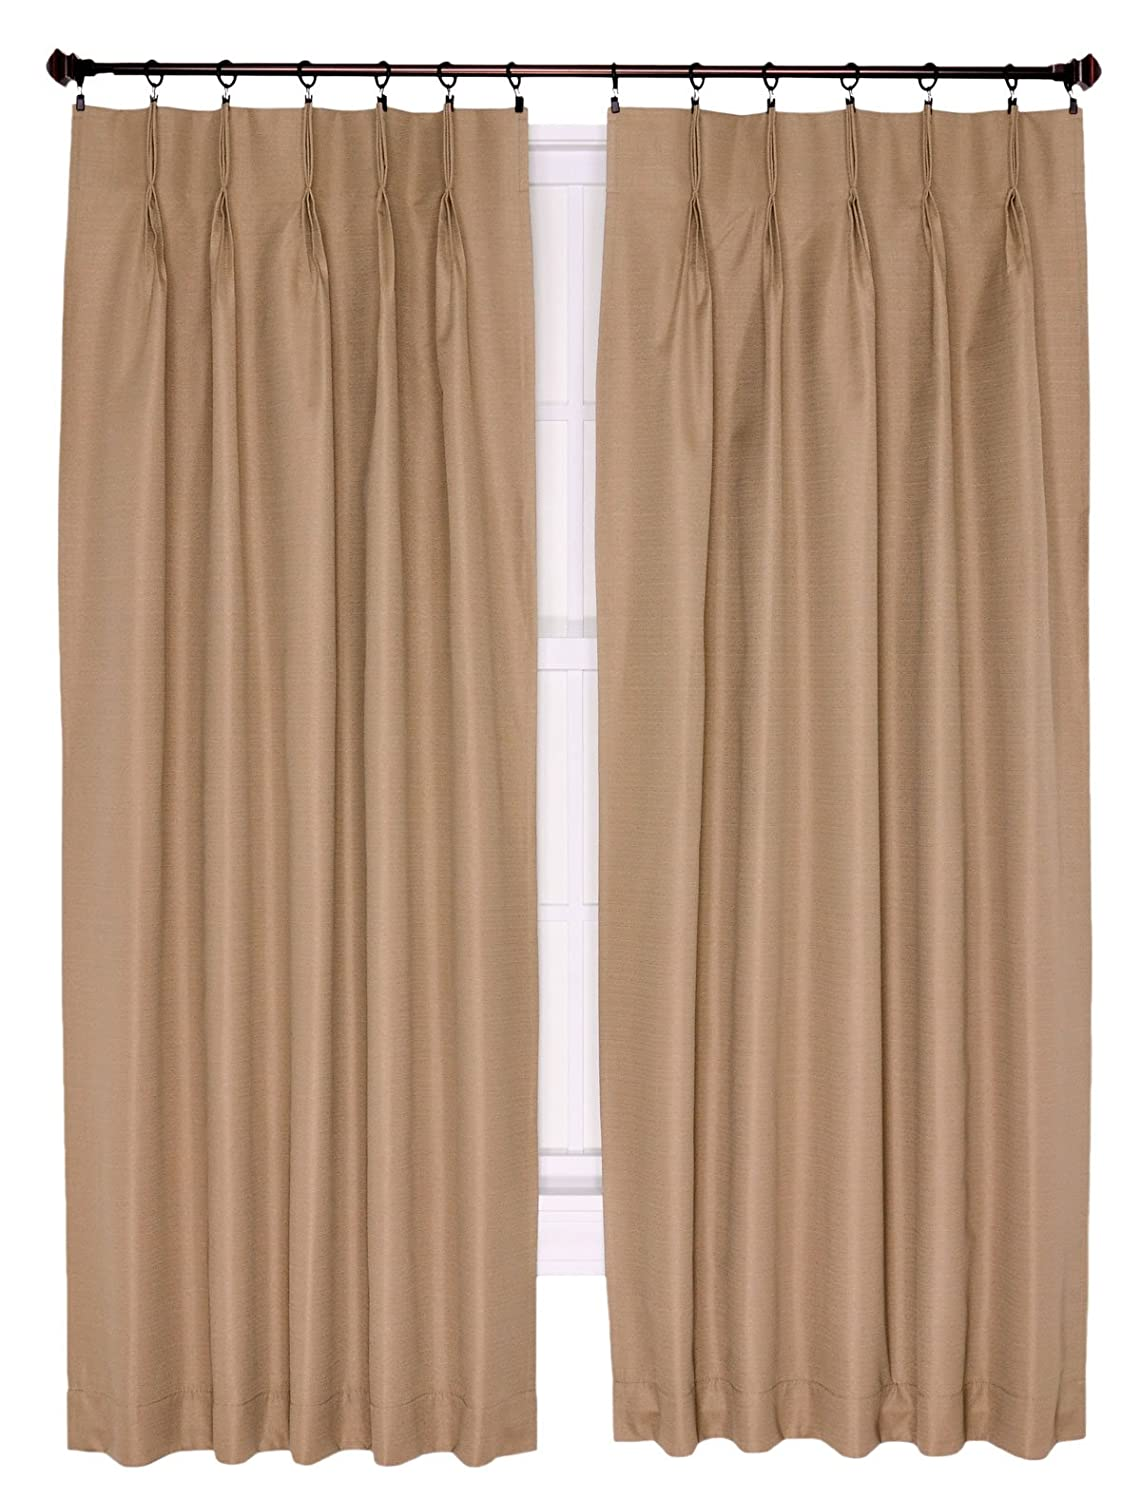 Amazon.com: Ellis Curtain Crosby Thermal Insulated 144 By 84 Inch Pinch  Pleated Foamback Curtains, Linen: Home U0026 Kitchen